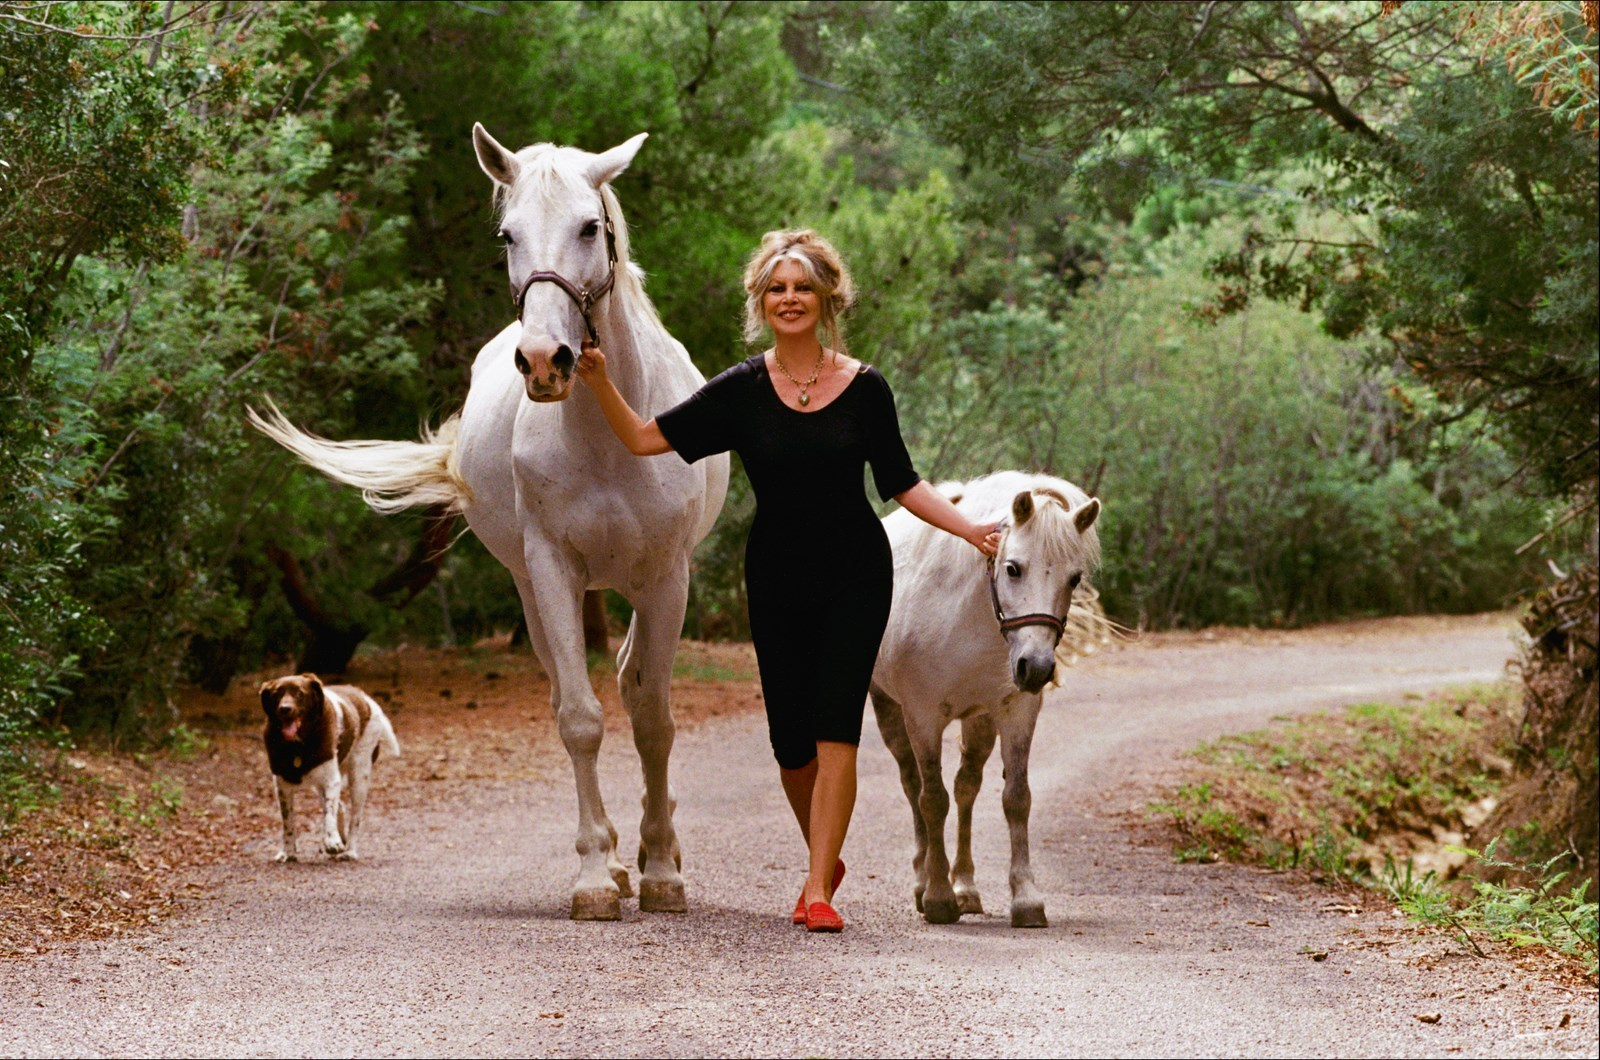 brigitte-bardot-with-horses-present-day.jpg